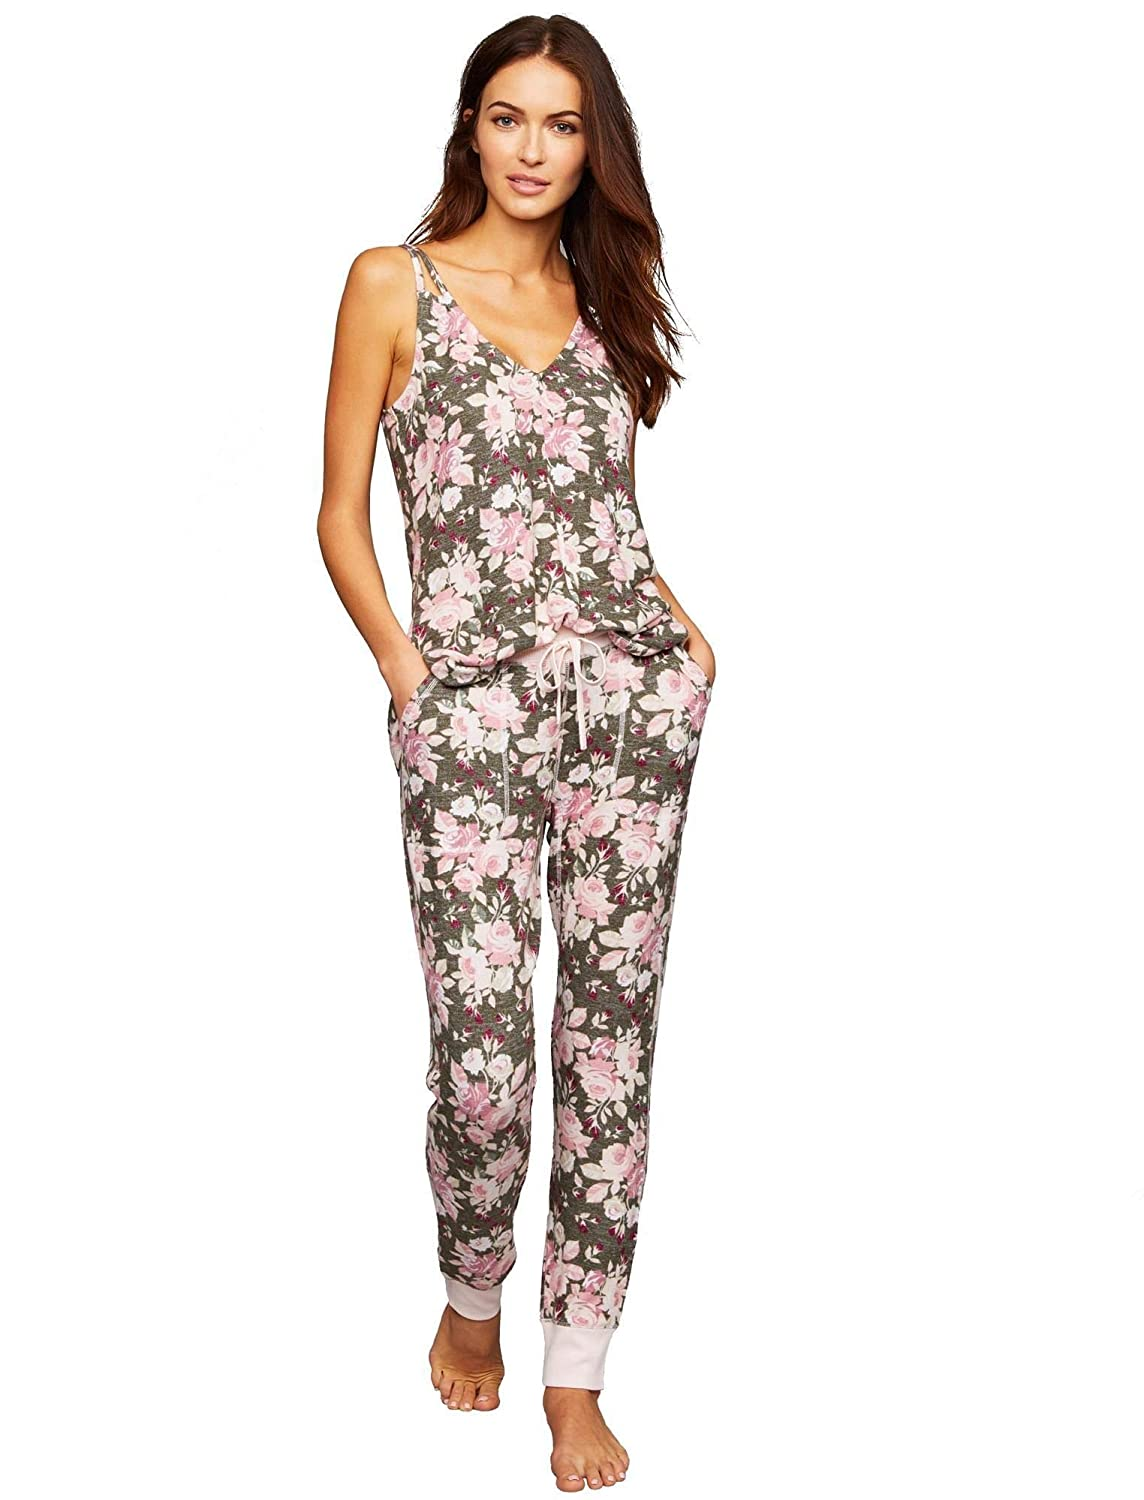 d603604738cbd A Pea in the Pod Splendid Relaxed Fit Maternity Sleep Pant at Amazon  Women's Clothing store: